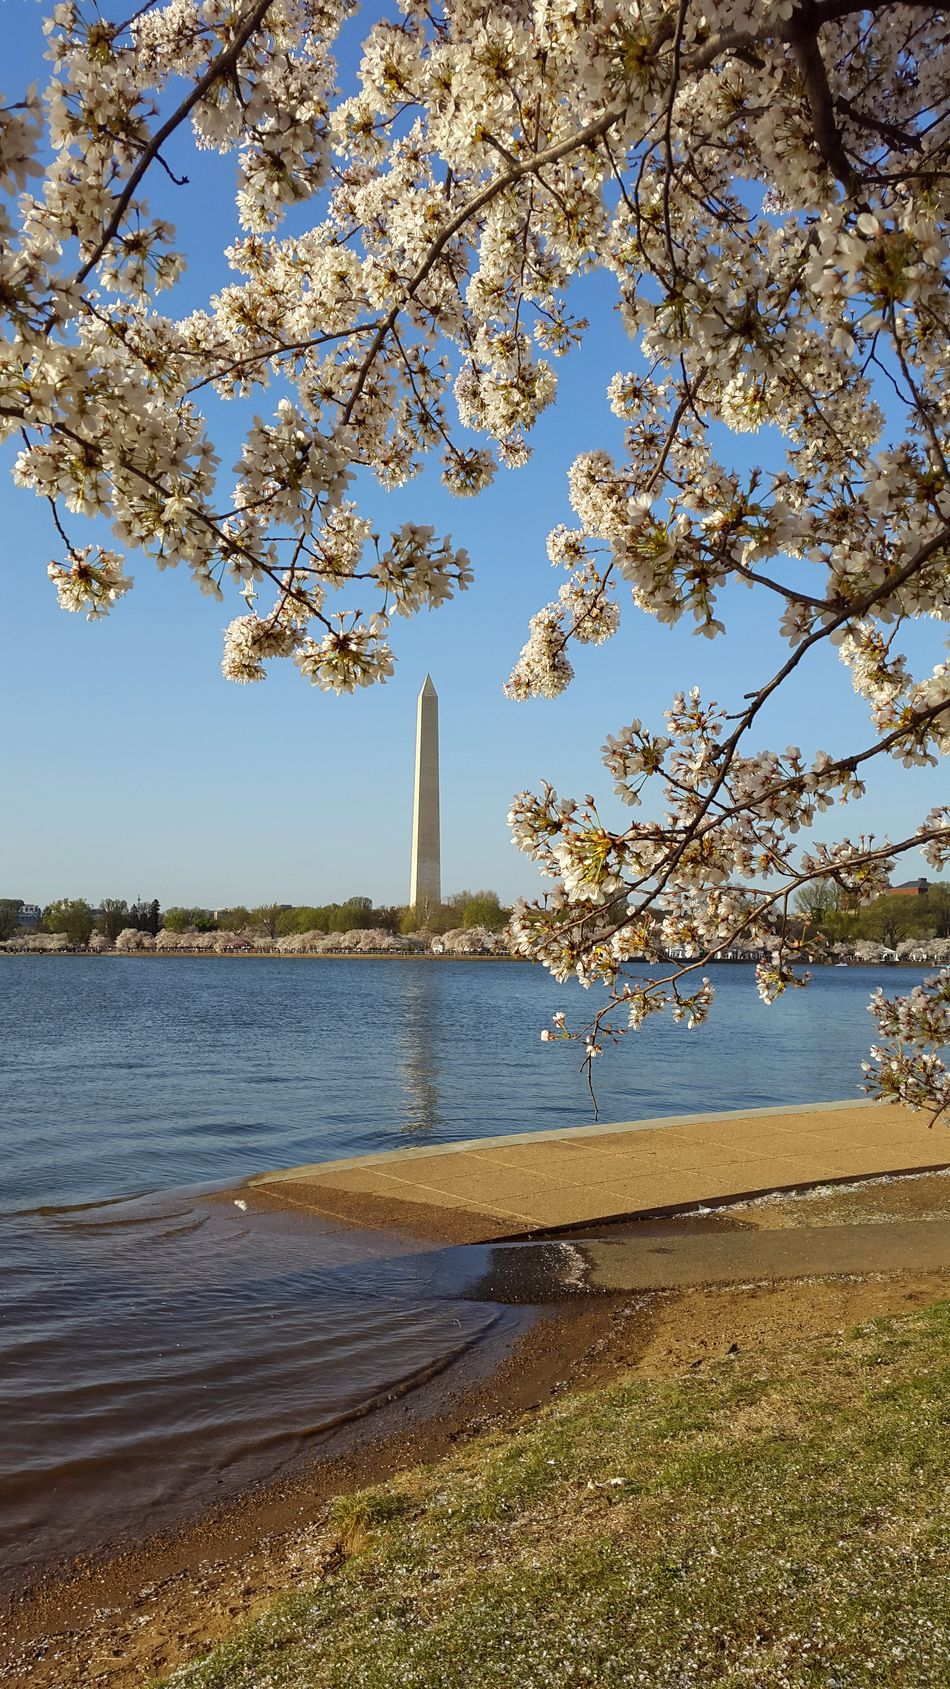 Cherry blossoms in DC Tree Outdoors Travel Destinations No People Enjoying The View Beauty In Nature Beautiful Nature Oneofthosedays Landscape Composition Streetphoto Cherryblossom National Monument Park WashingtonDC